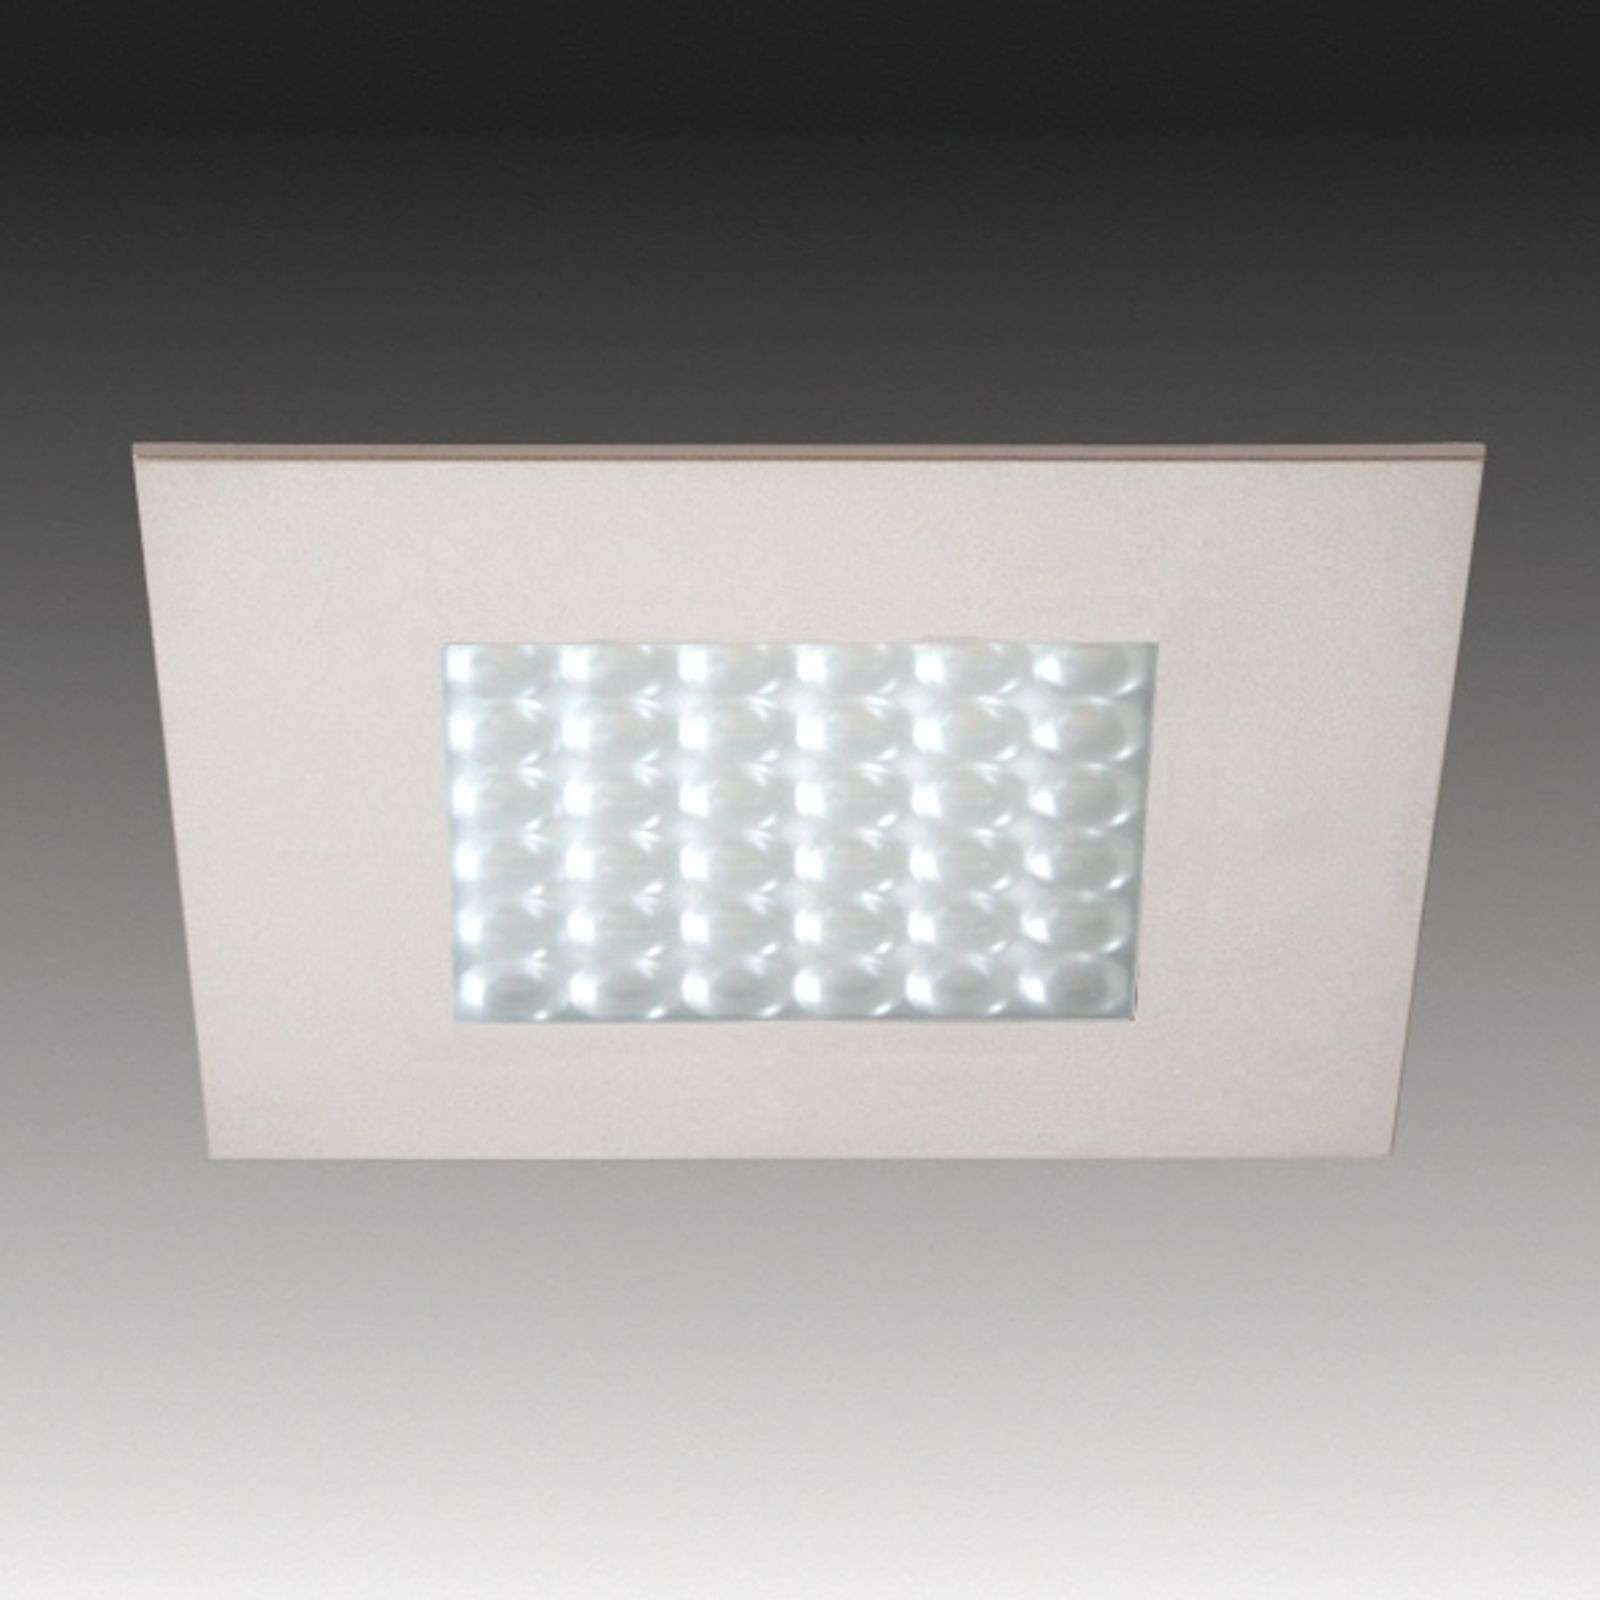 Spot encastrable LED Q 68 aspect inox